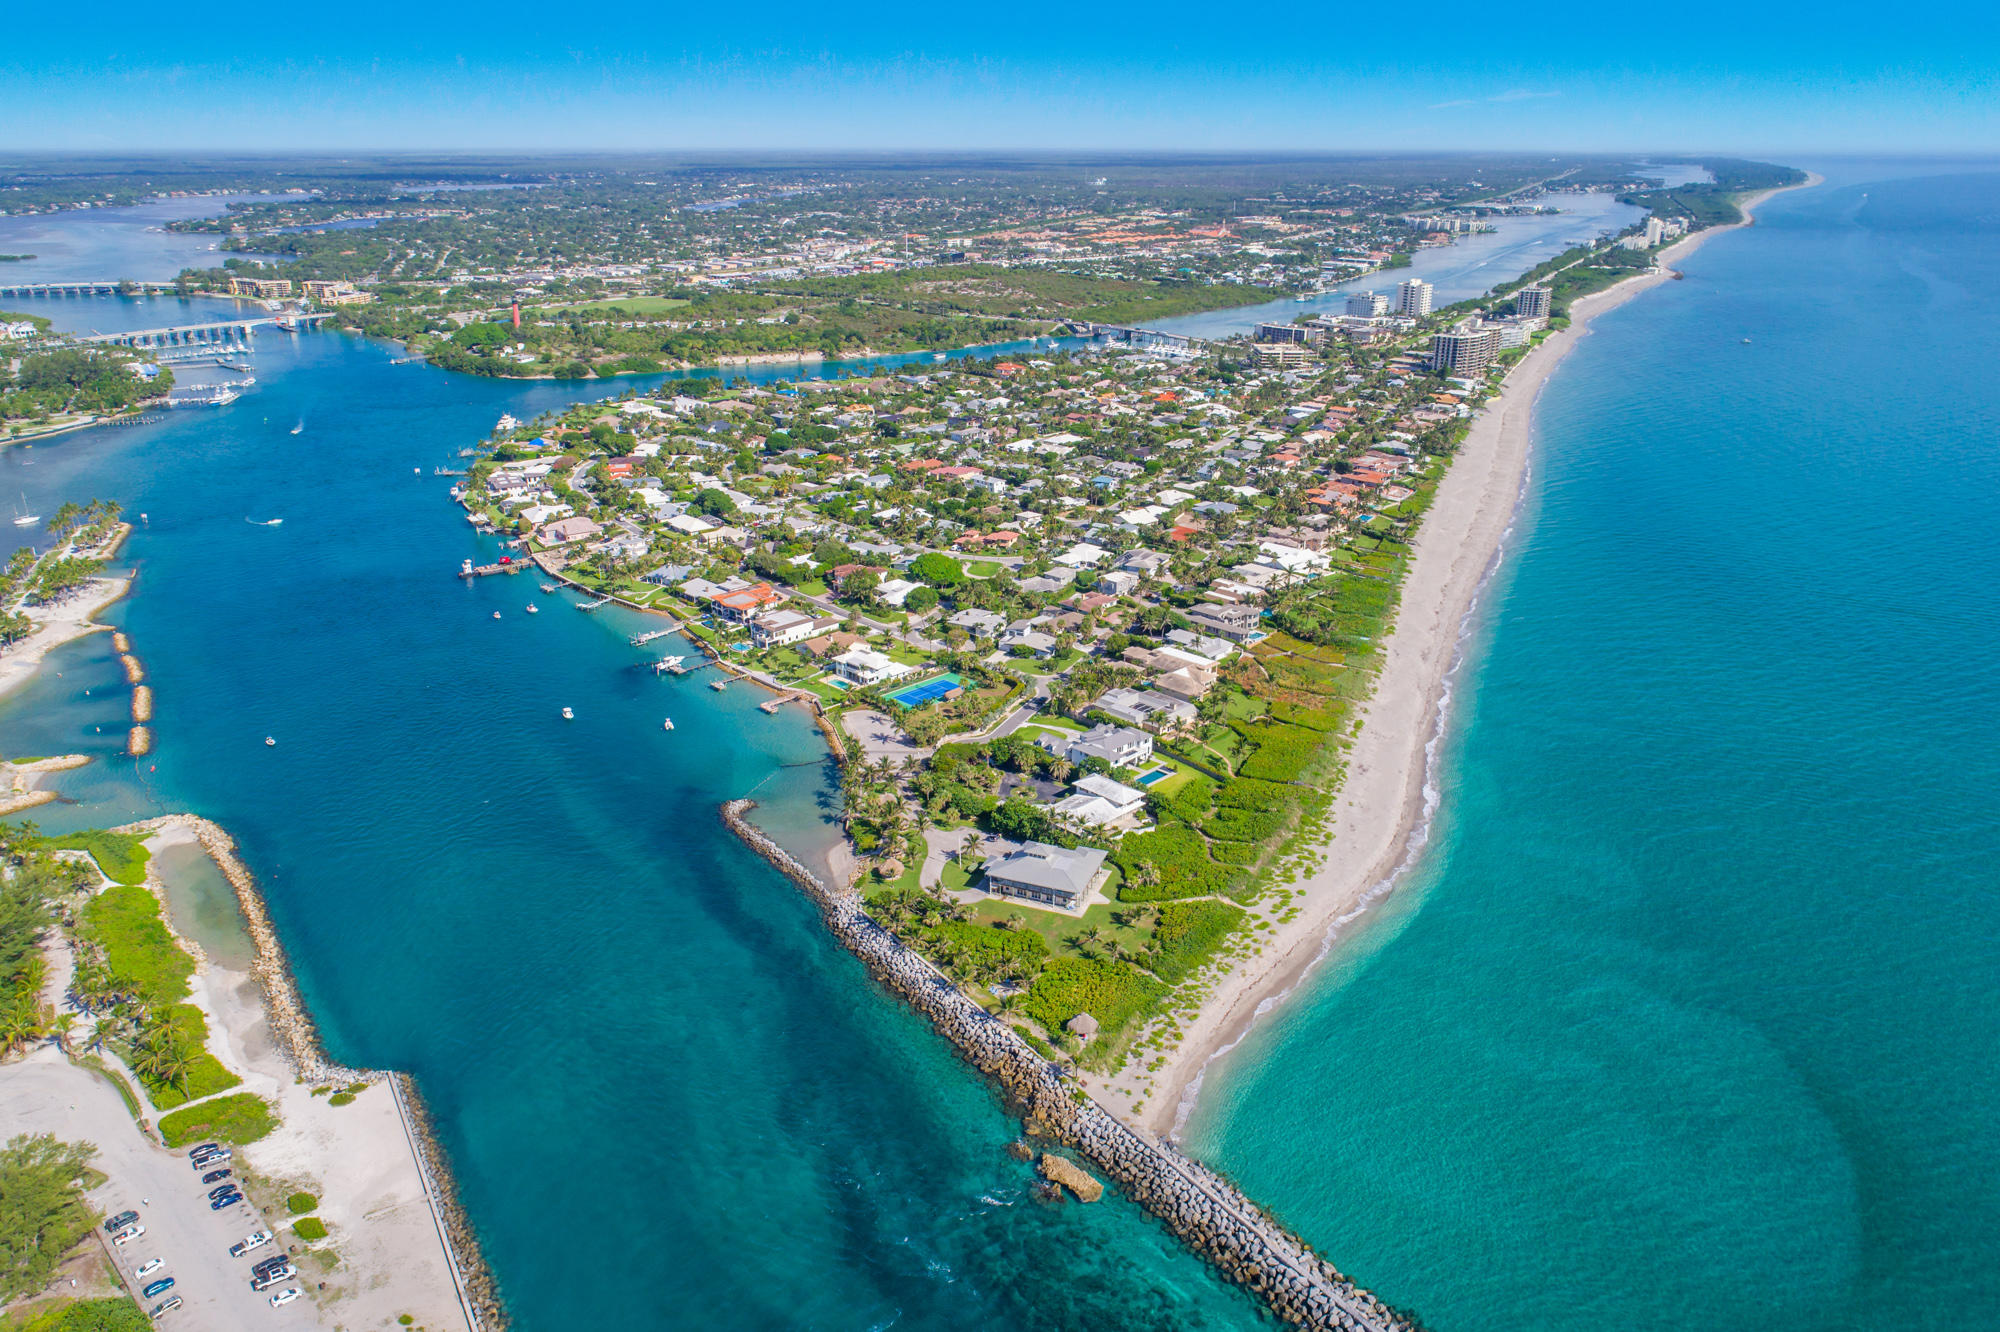 JUPITER INLET COLONY JUPITER